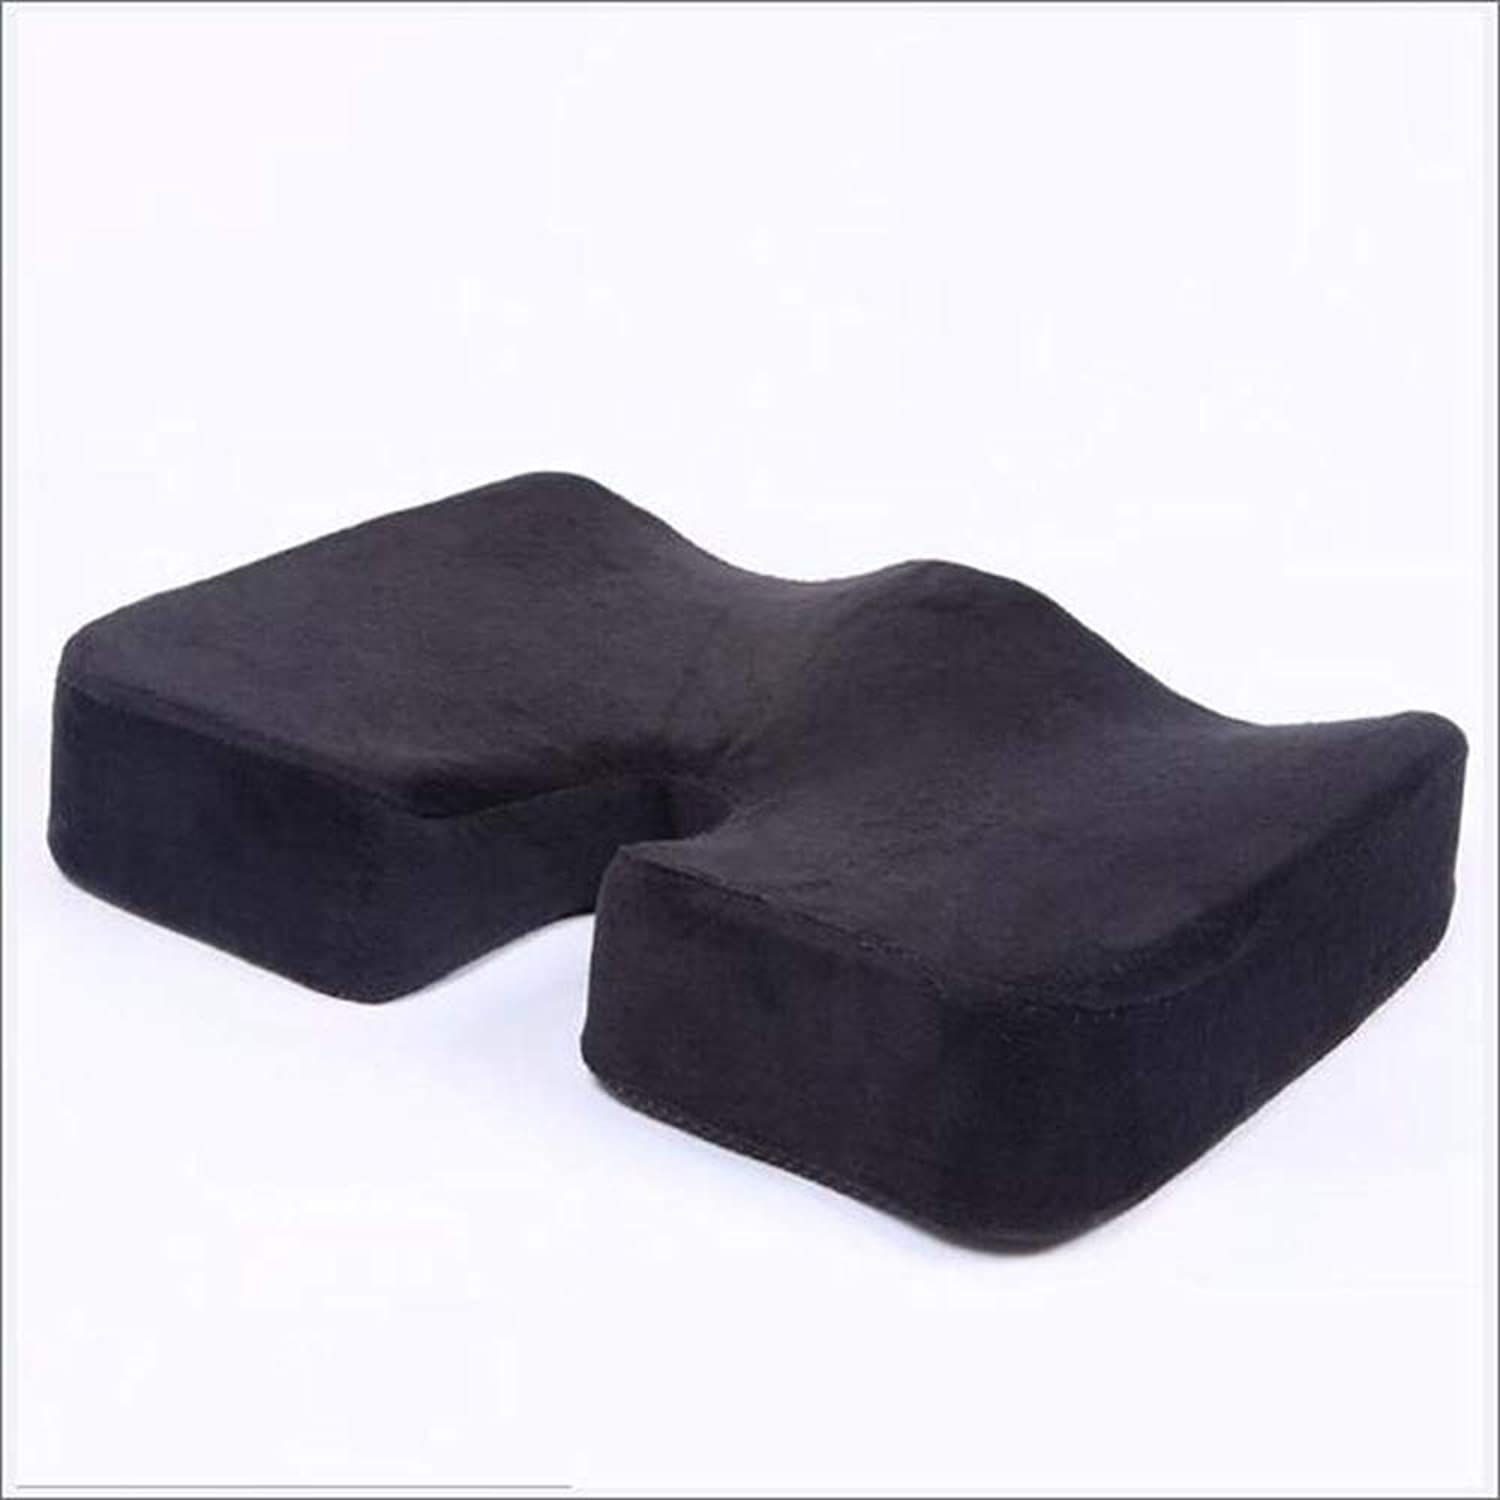 Timeless Comfort 100% Pure Memory Foam Luxury Cushion,Slow Rebound Beautiful Buttocks Office Cushions Thickened Butt Cushions(Black)